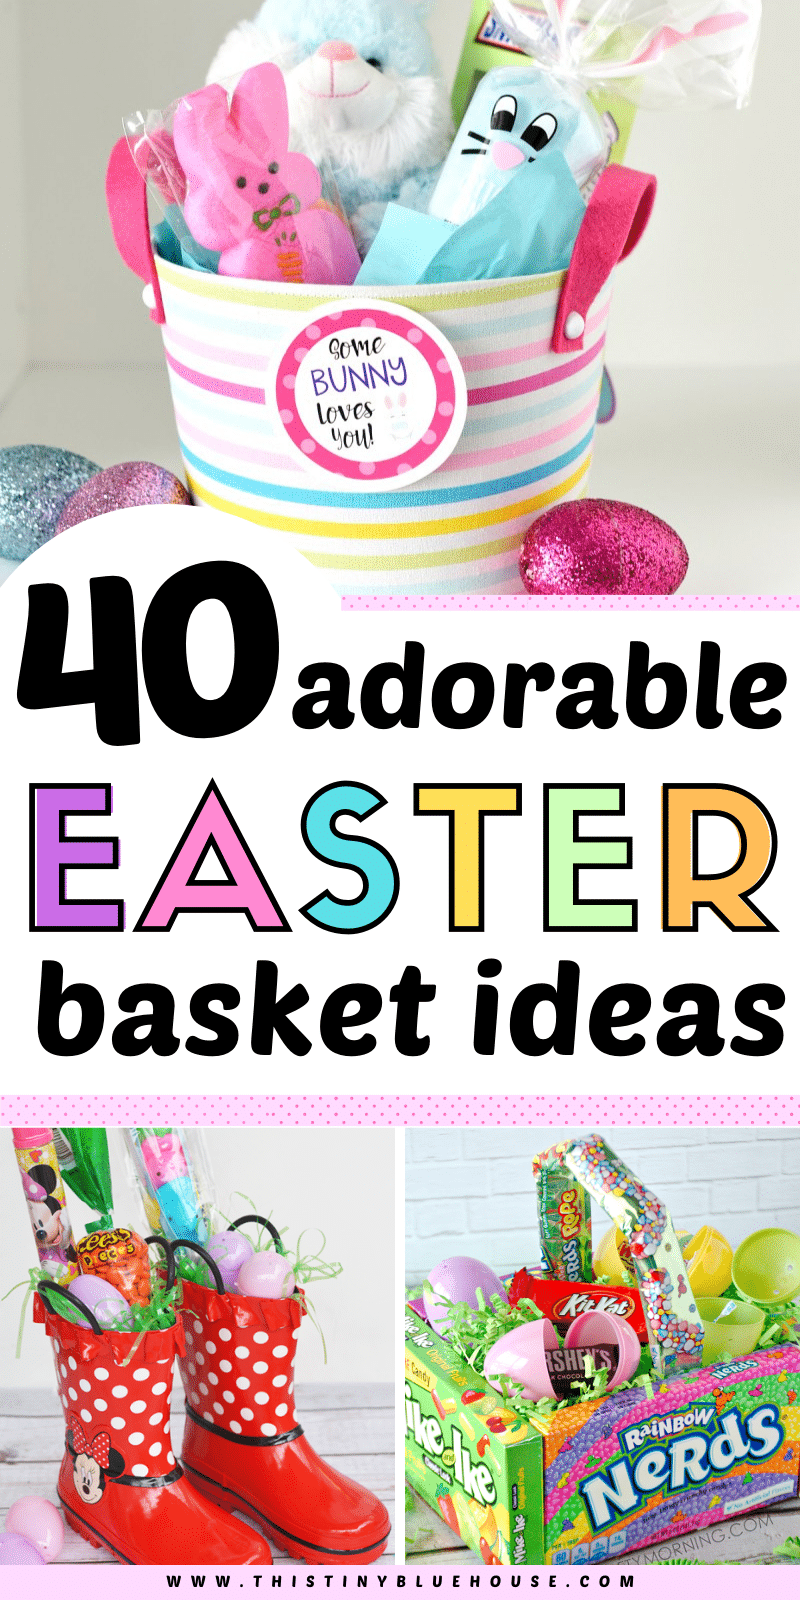 Surprise your kiddos with one of these 40 adorable Easter basket ideas for kids. Fun, creative and easy to make these Easter Baskets are guaranteed to be a hit. #easterbasket #diyeasterbasketideas #diyeasterbaskets #easterbasketideasforkids #simpleeasterbasketideasforkids #besteasterbasketideasforkids